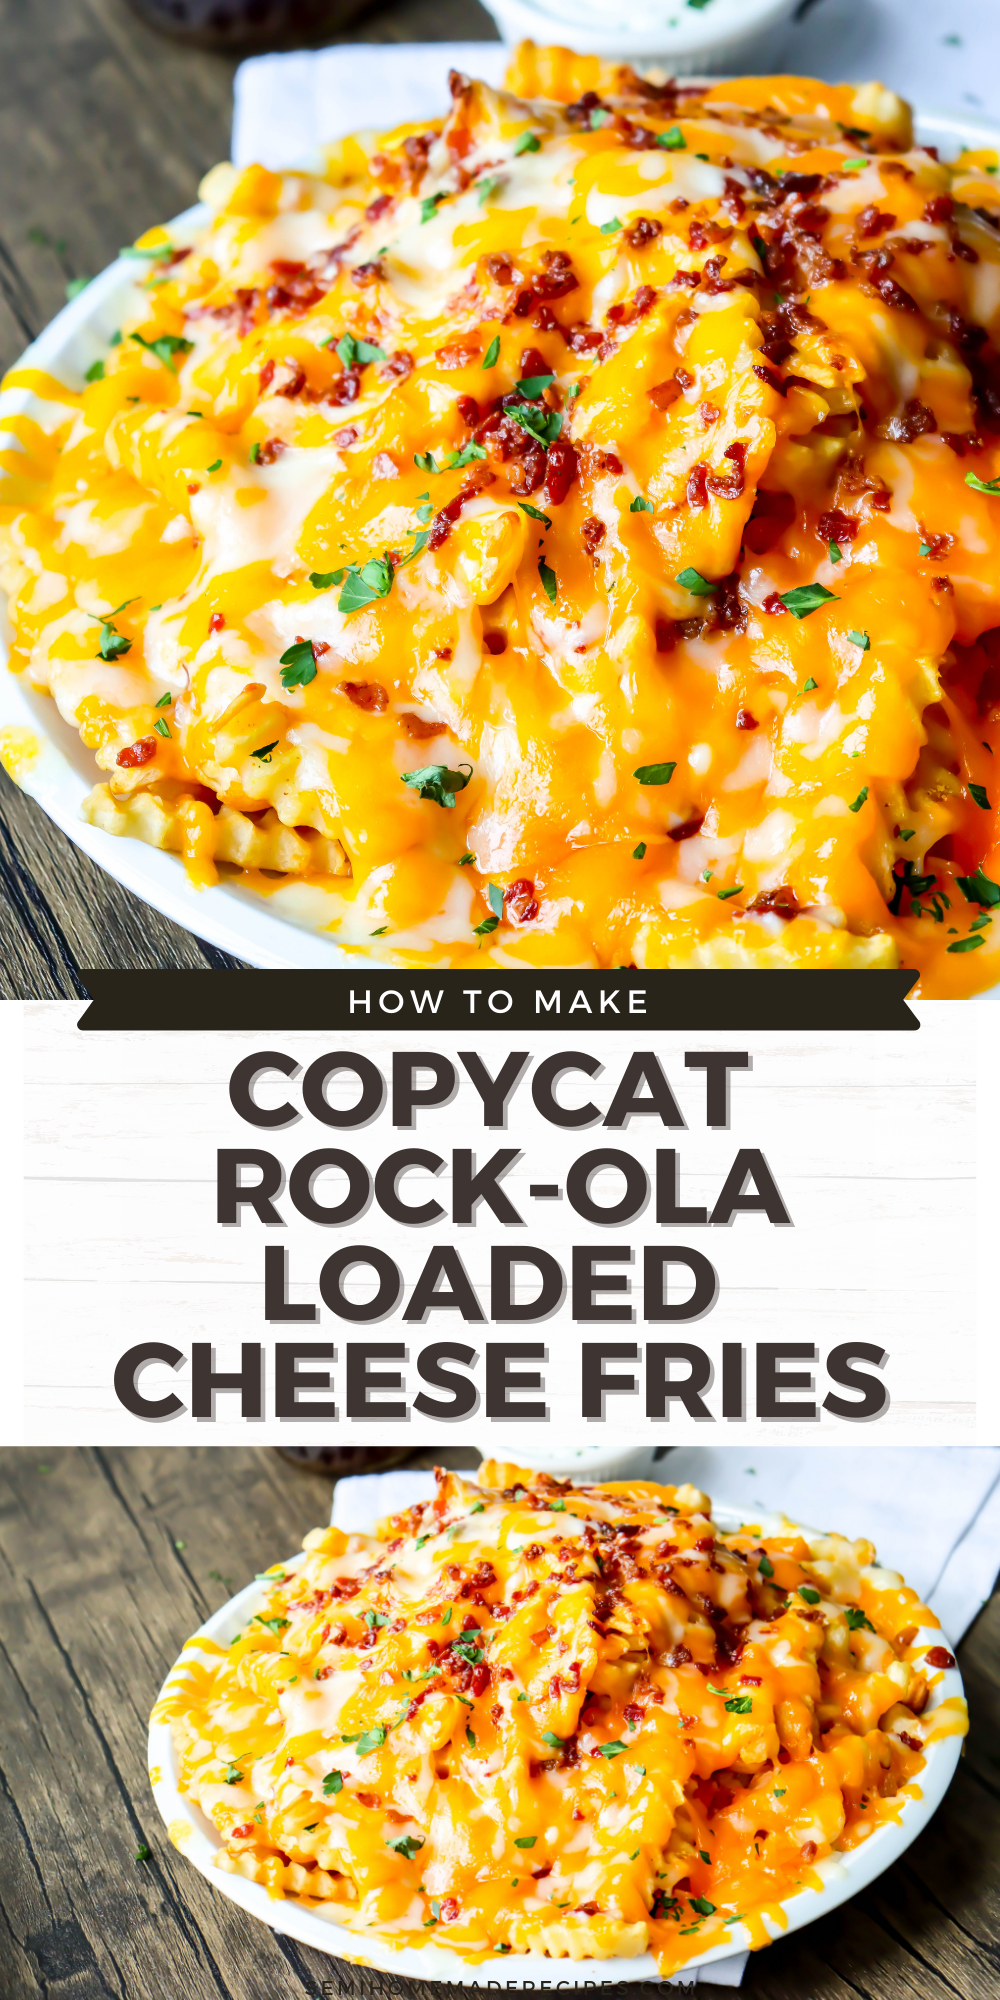 These CopyCat Rock-ola Loaded Cheese Fries are easy to make and you're going to love them! Crinkle fries smothered in grated cheddar and monterey jack cheese, topped with bacon! Perfect with a side of ranch!